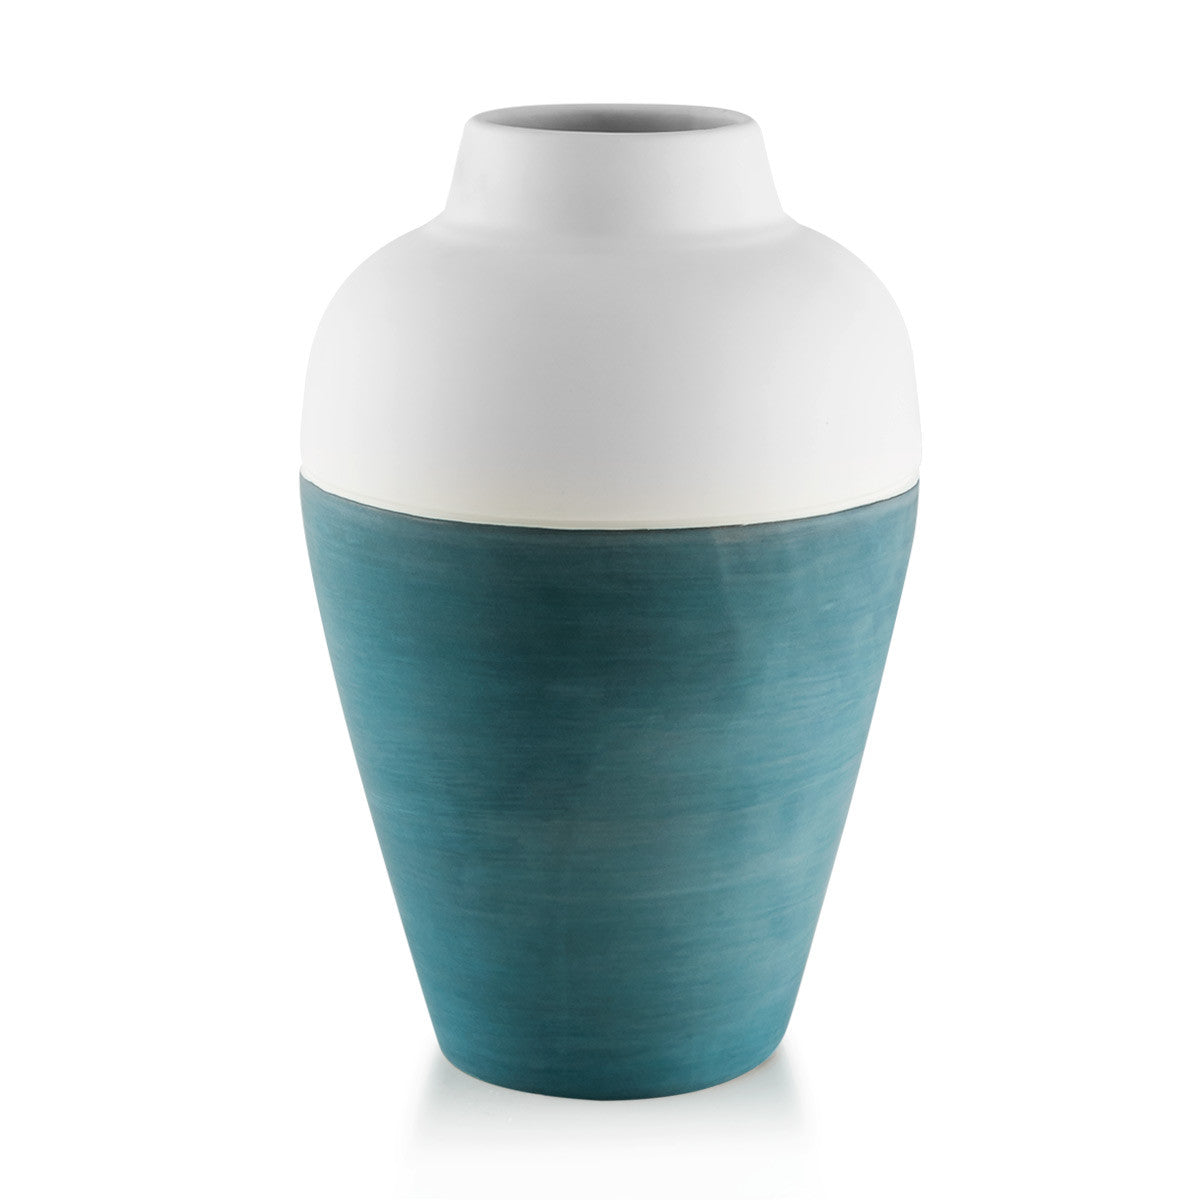 blue and white vases-shades of blue color-ceramic round vase